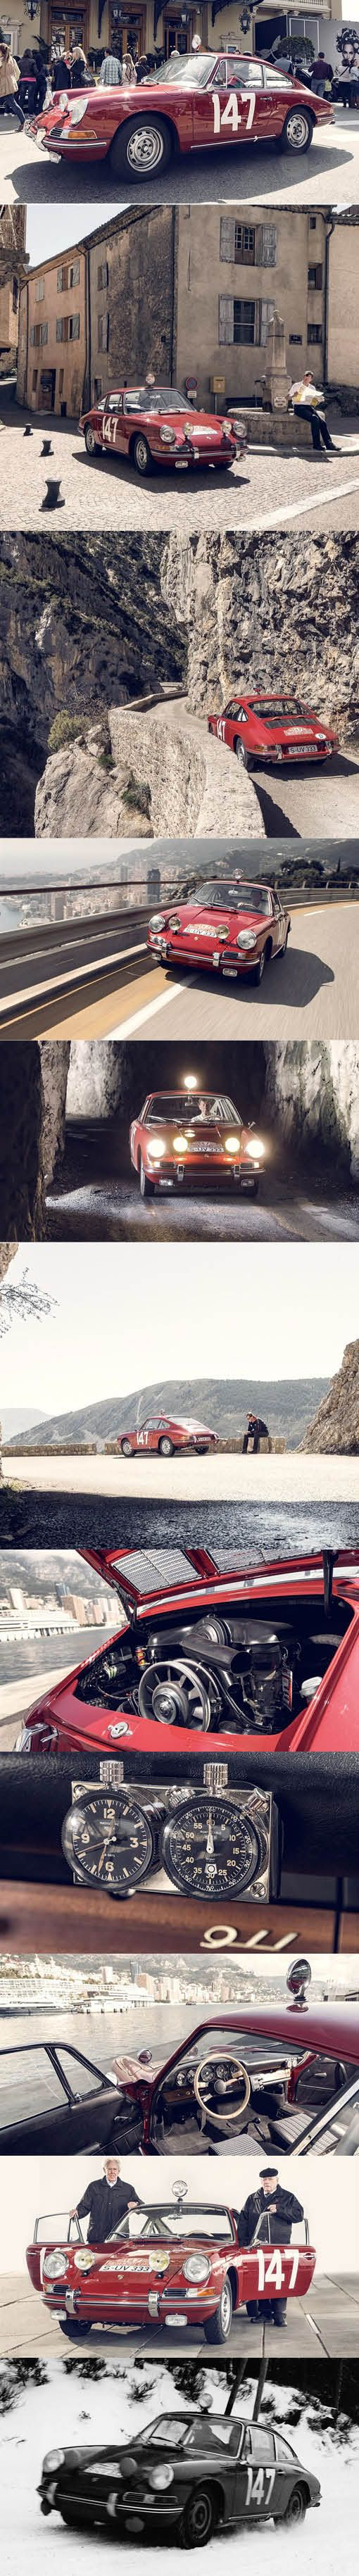 1965 Porsche 911 S / Germany / winner Rally Monte Carlo / red / restored by Porsche Classic